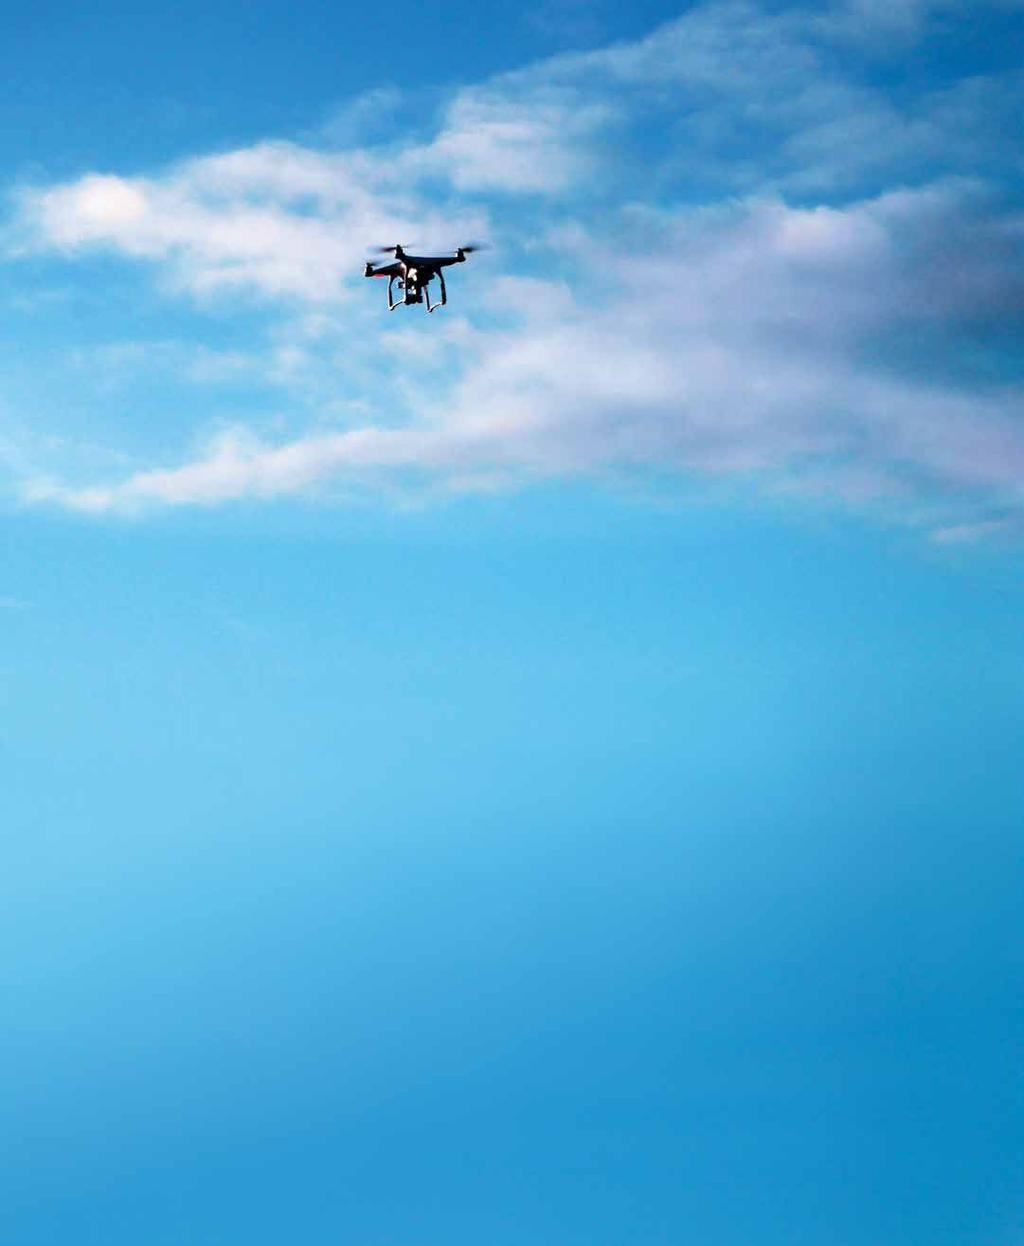 MAIN STORY INDUSTRY MUST ACT FAST TO REGULATE DRONE USE Rapid growth in drones is an increasing risk to